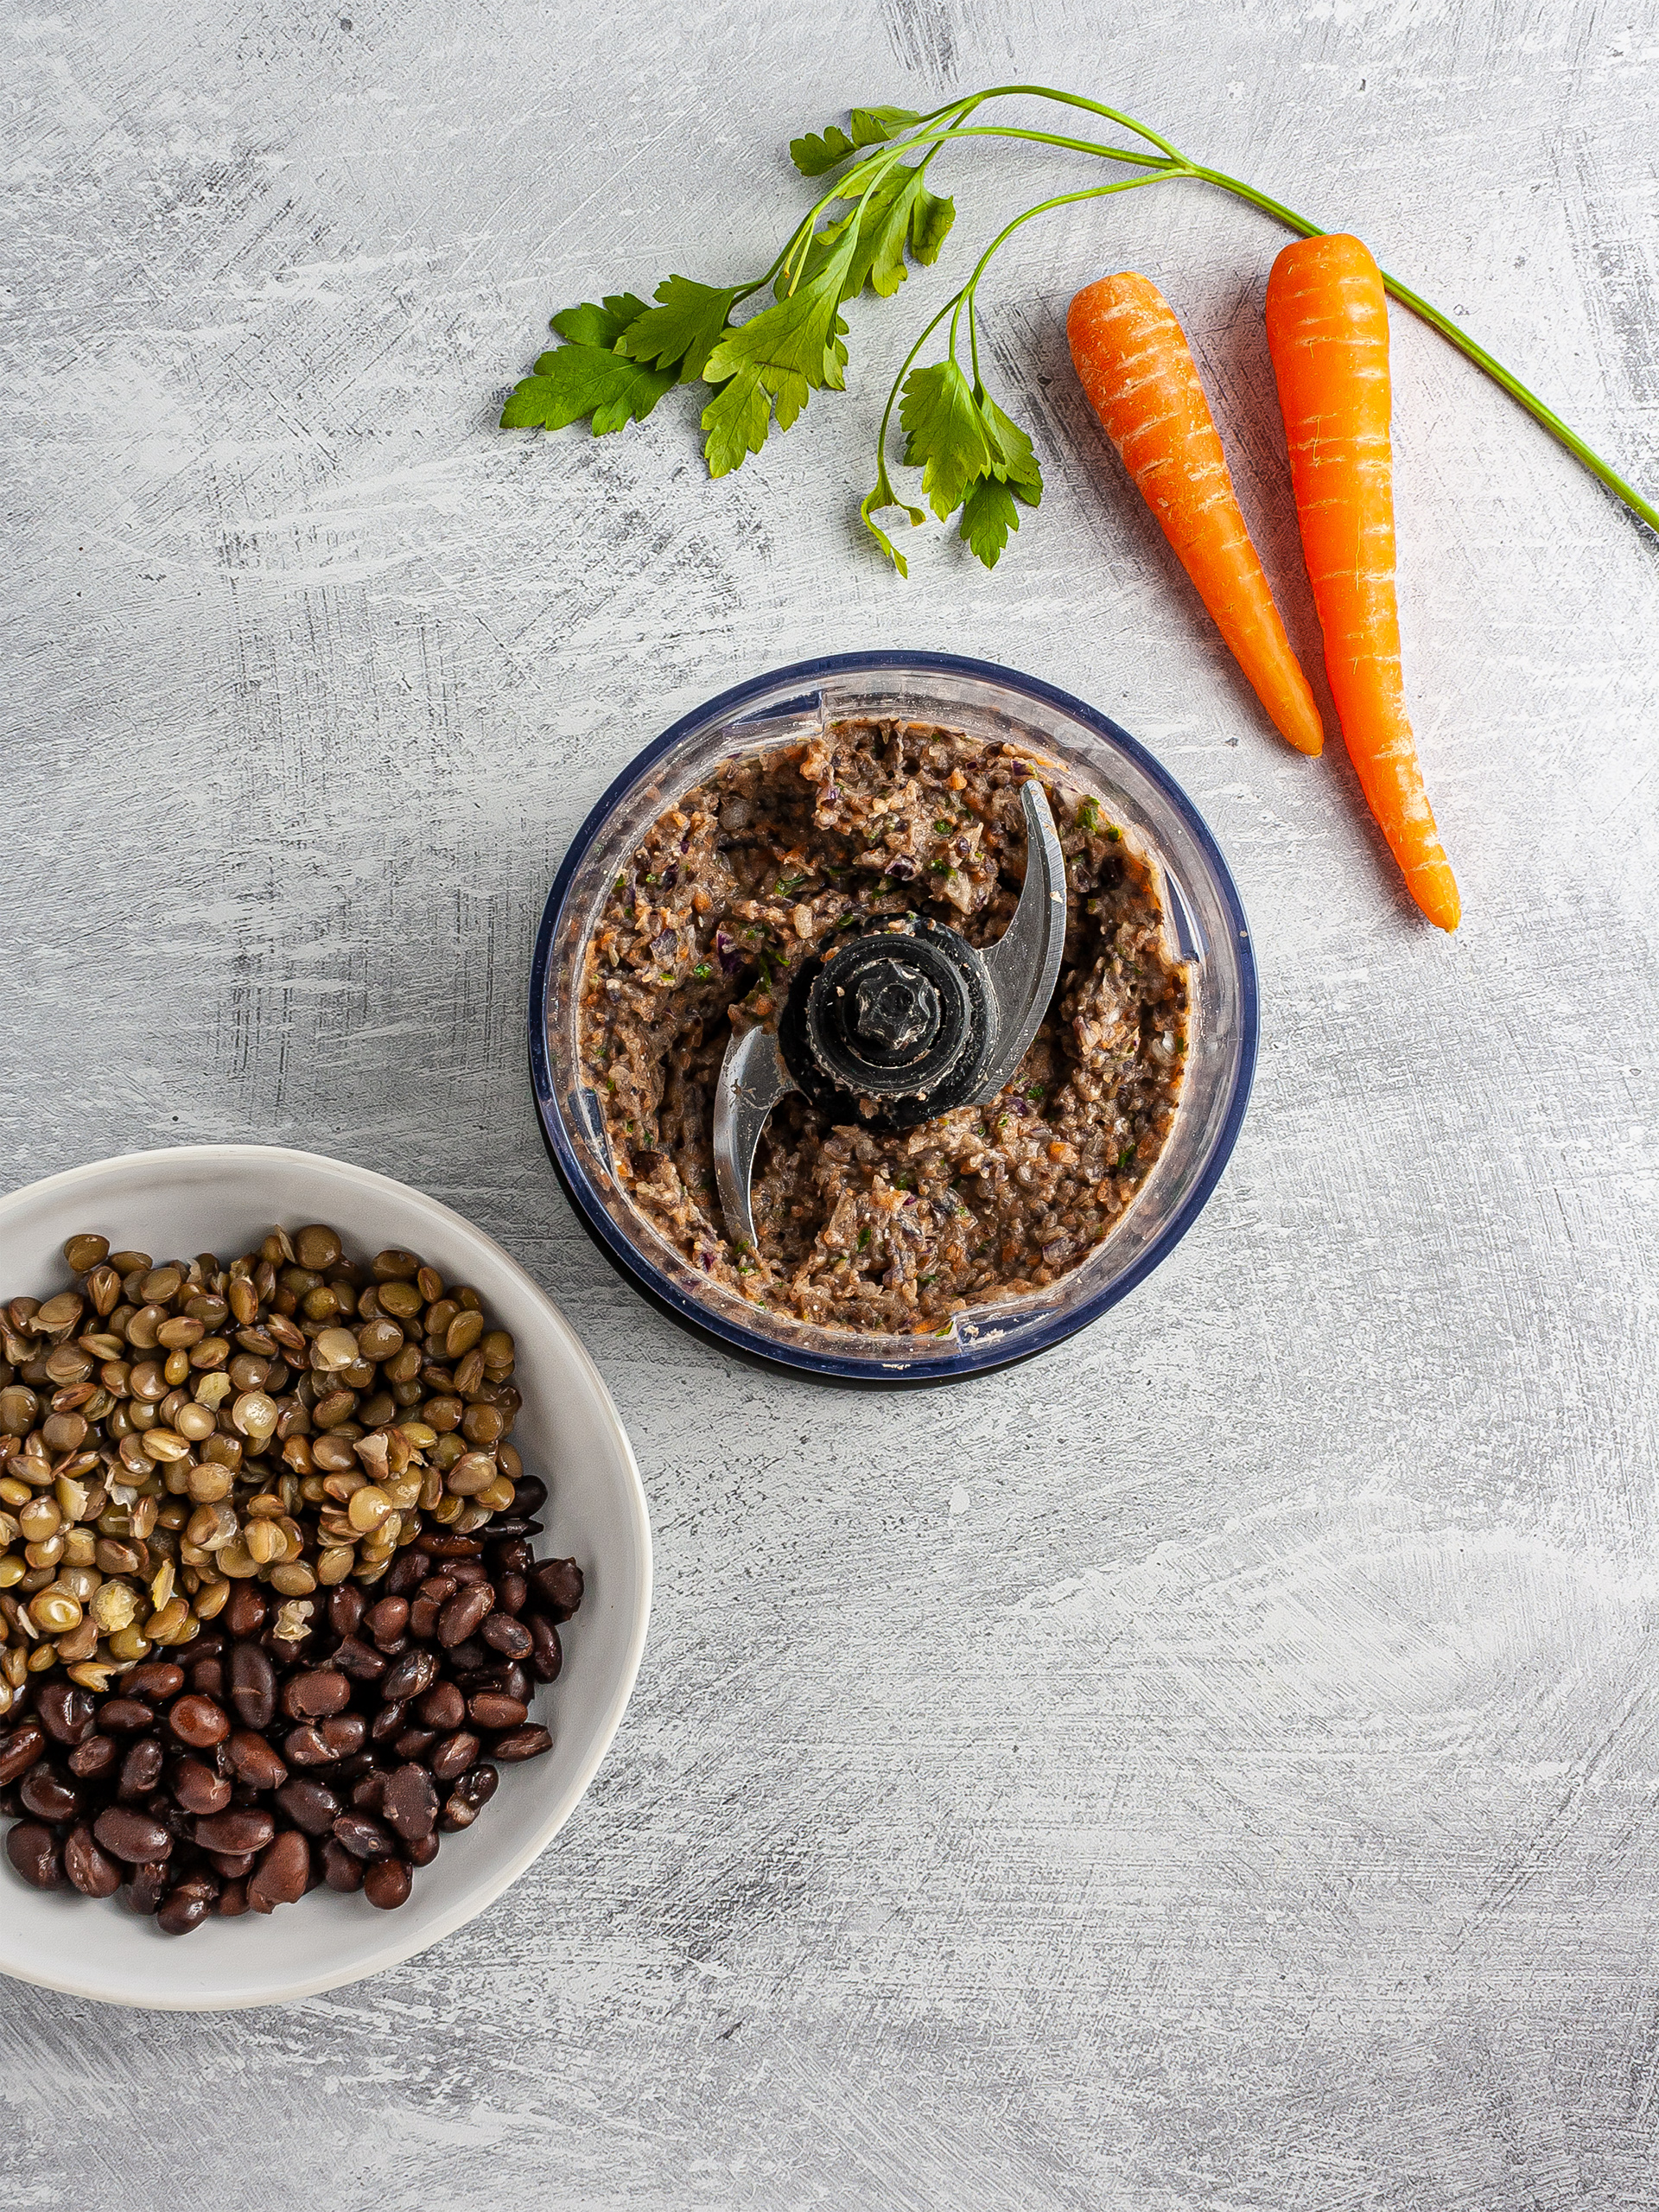 Black beans and lentils blended with carrots and parsley